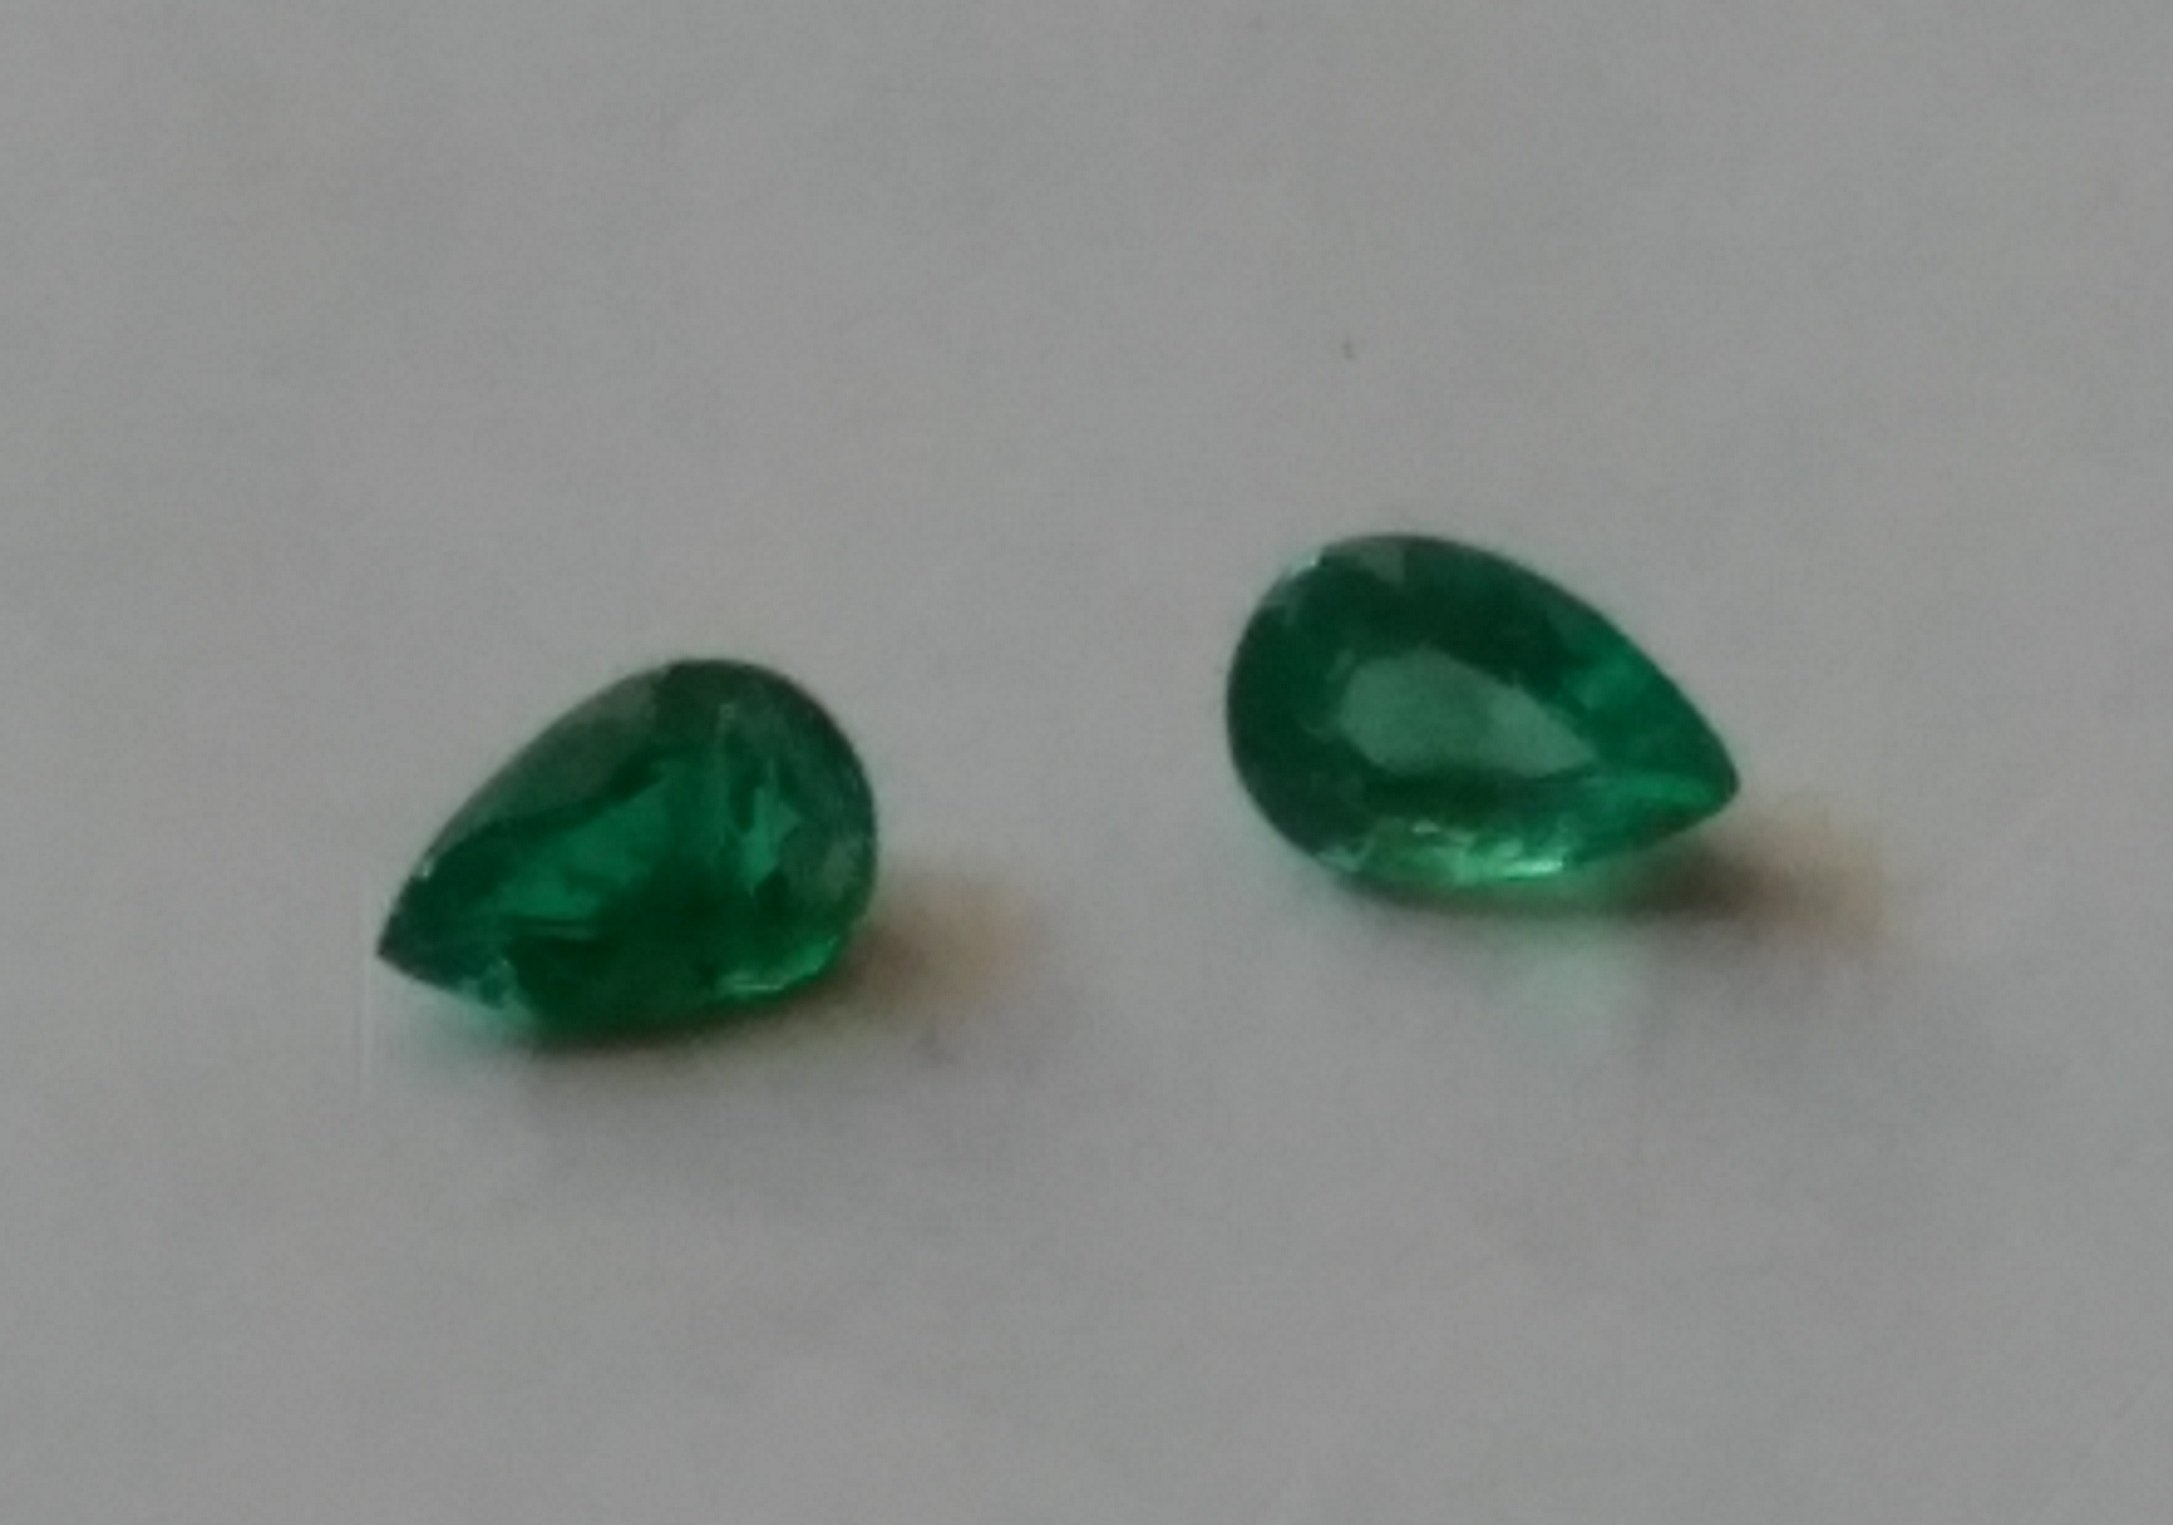 #Natural Emerald Pair  weight - 0.65 Carat